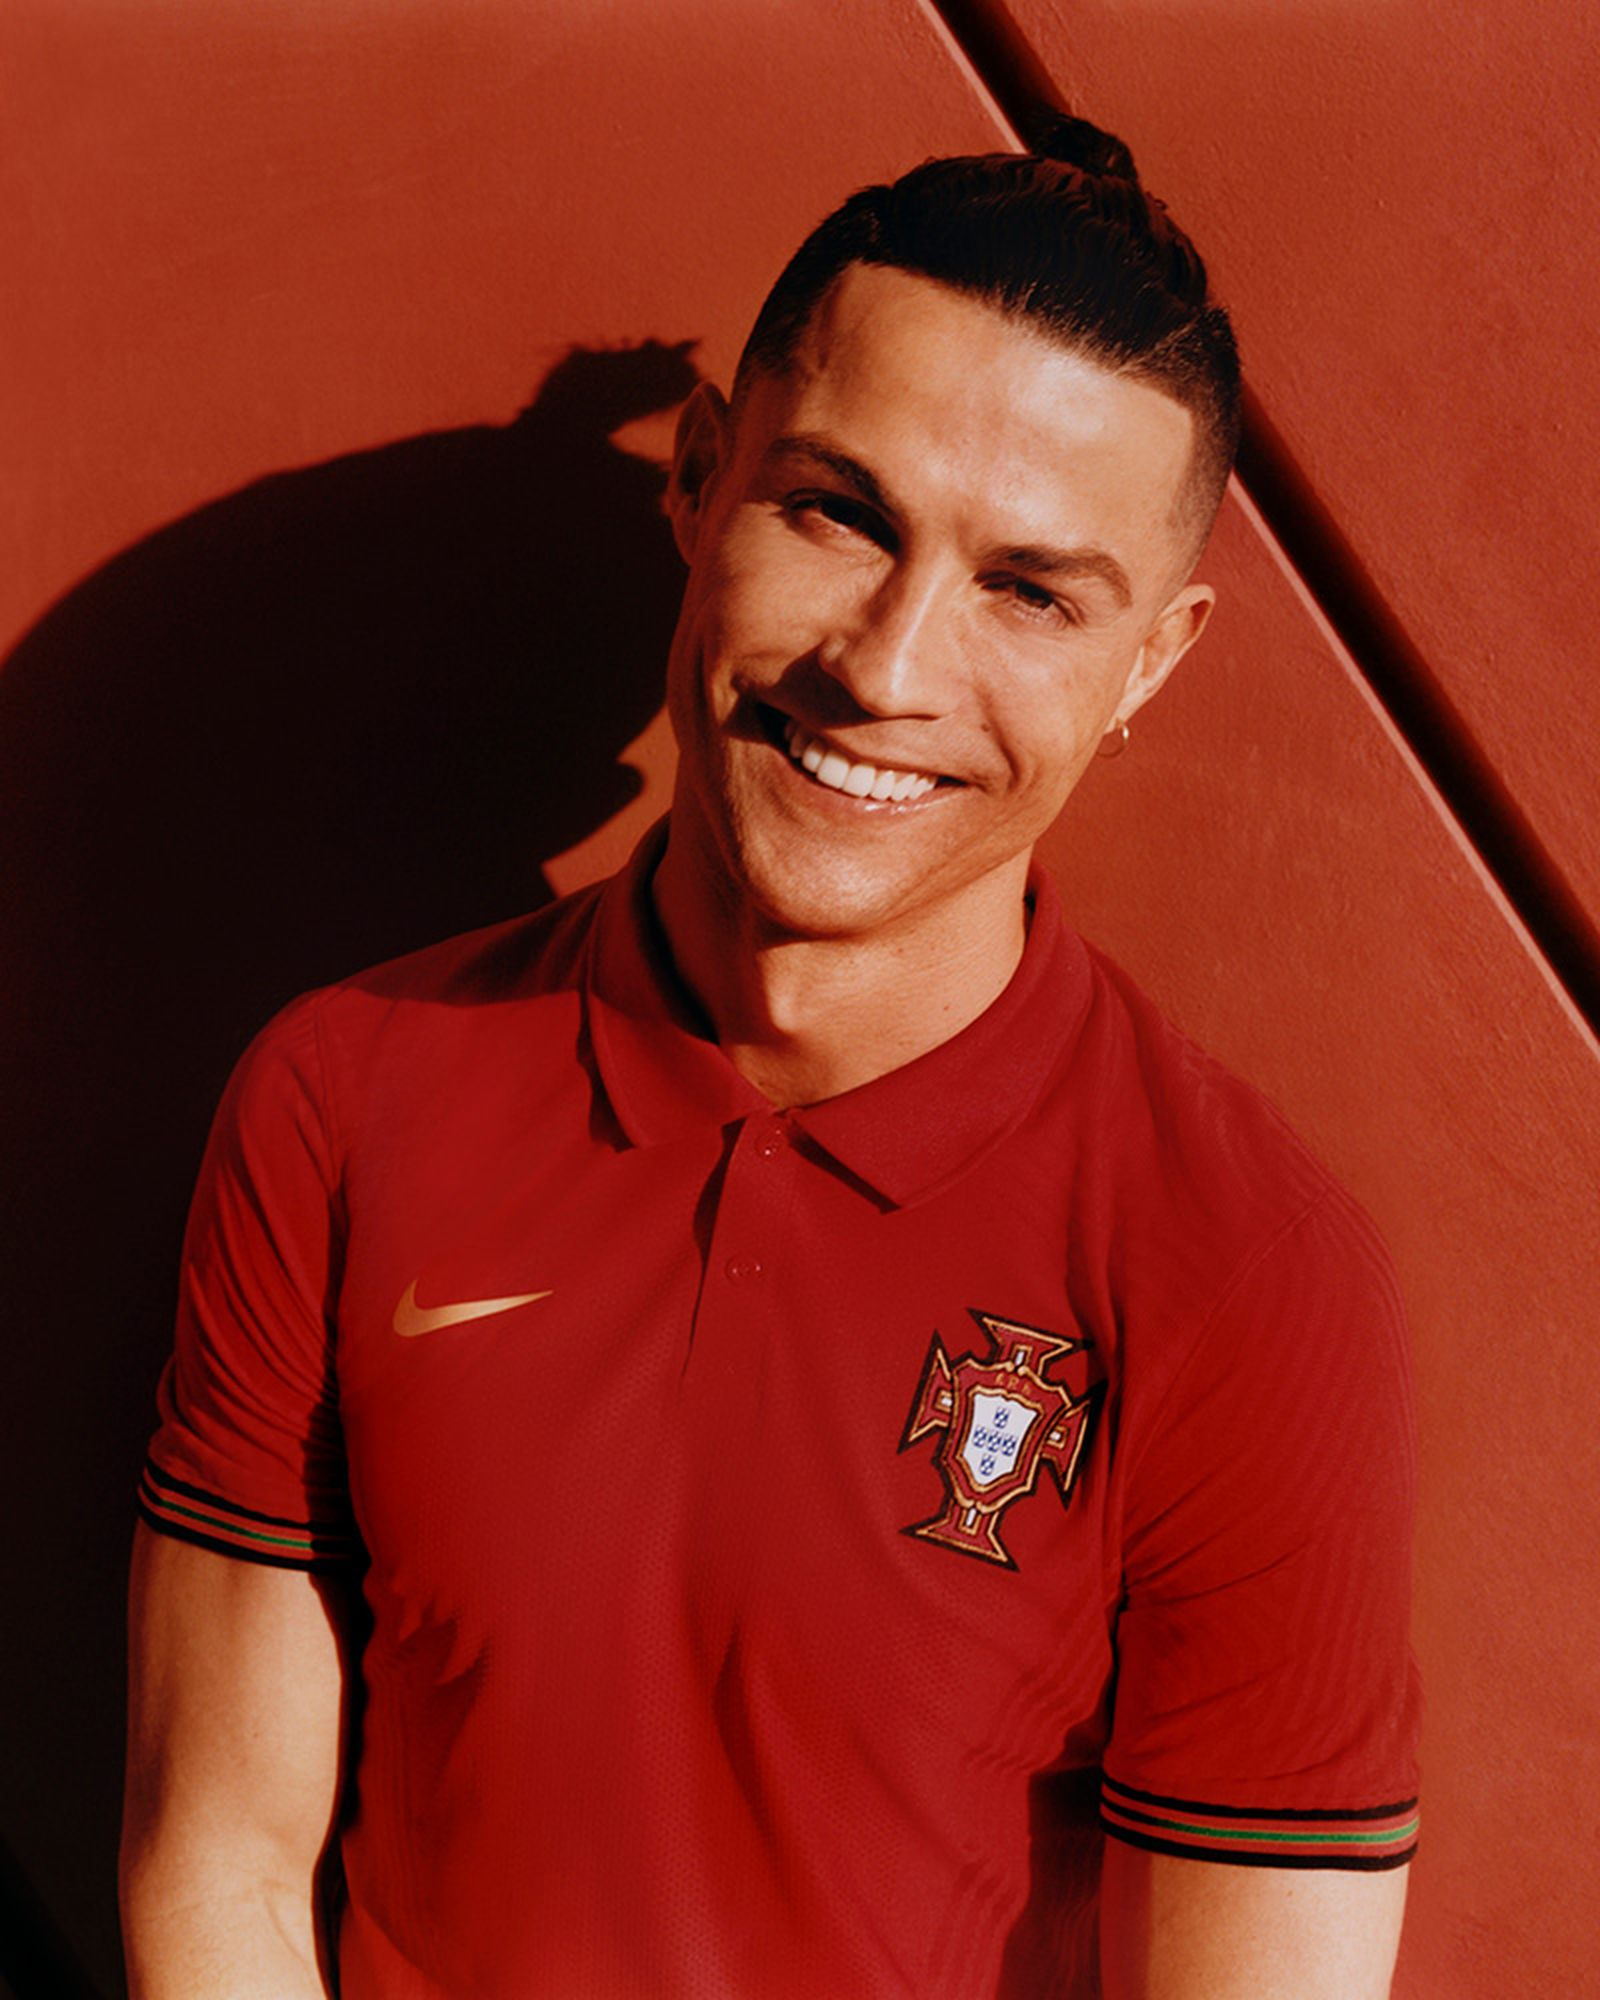 euro-2020-jersey-roundtable-ranking-portugal-01